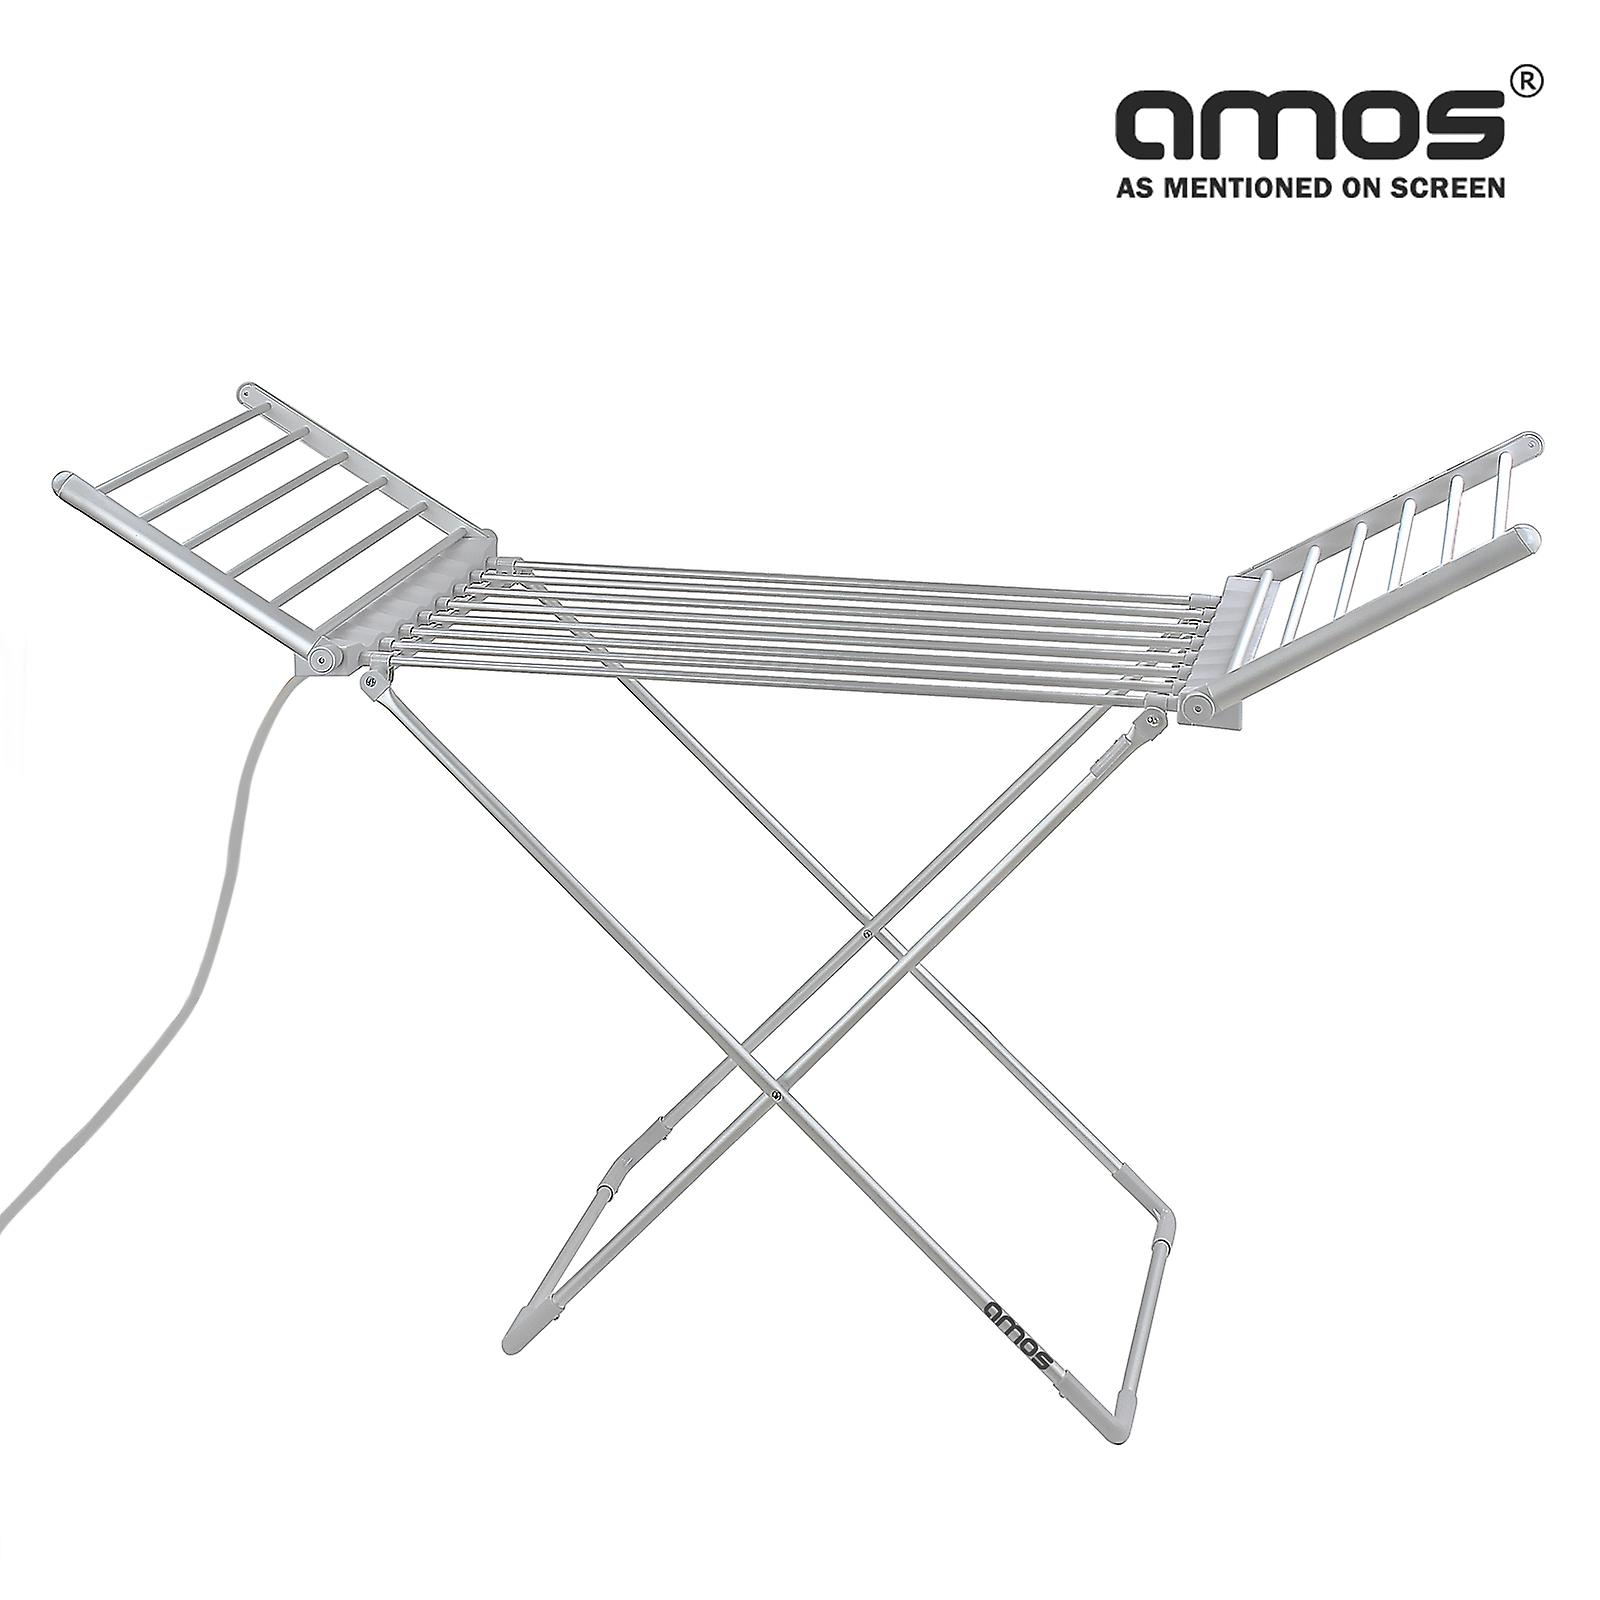 AMOS 230 Electric Clothes Dryer